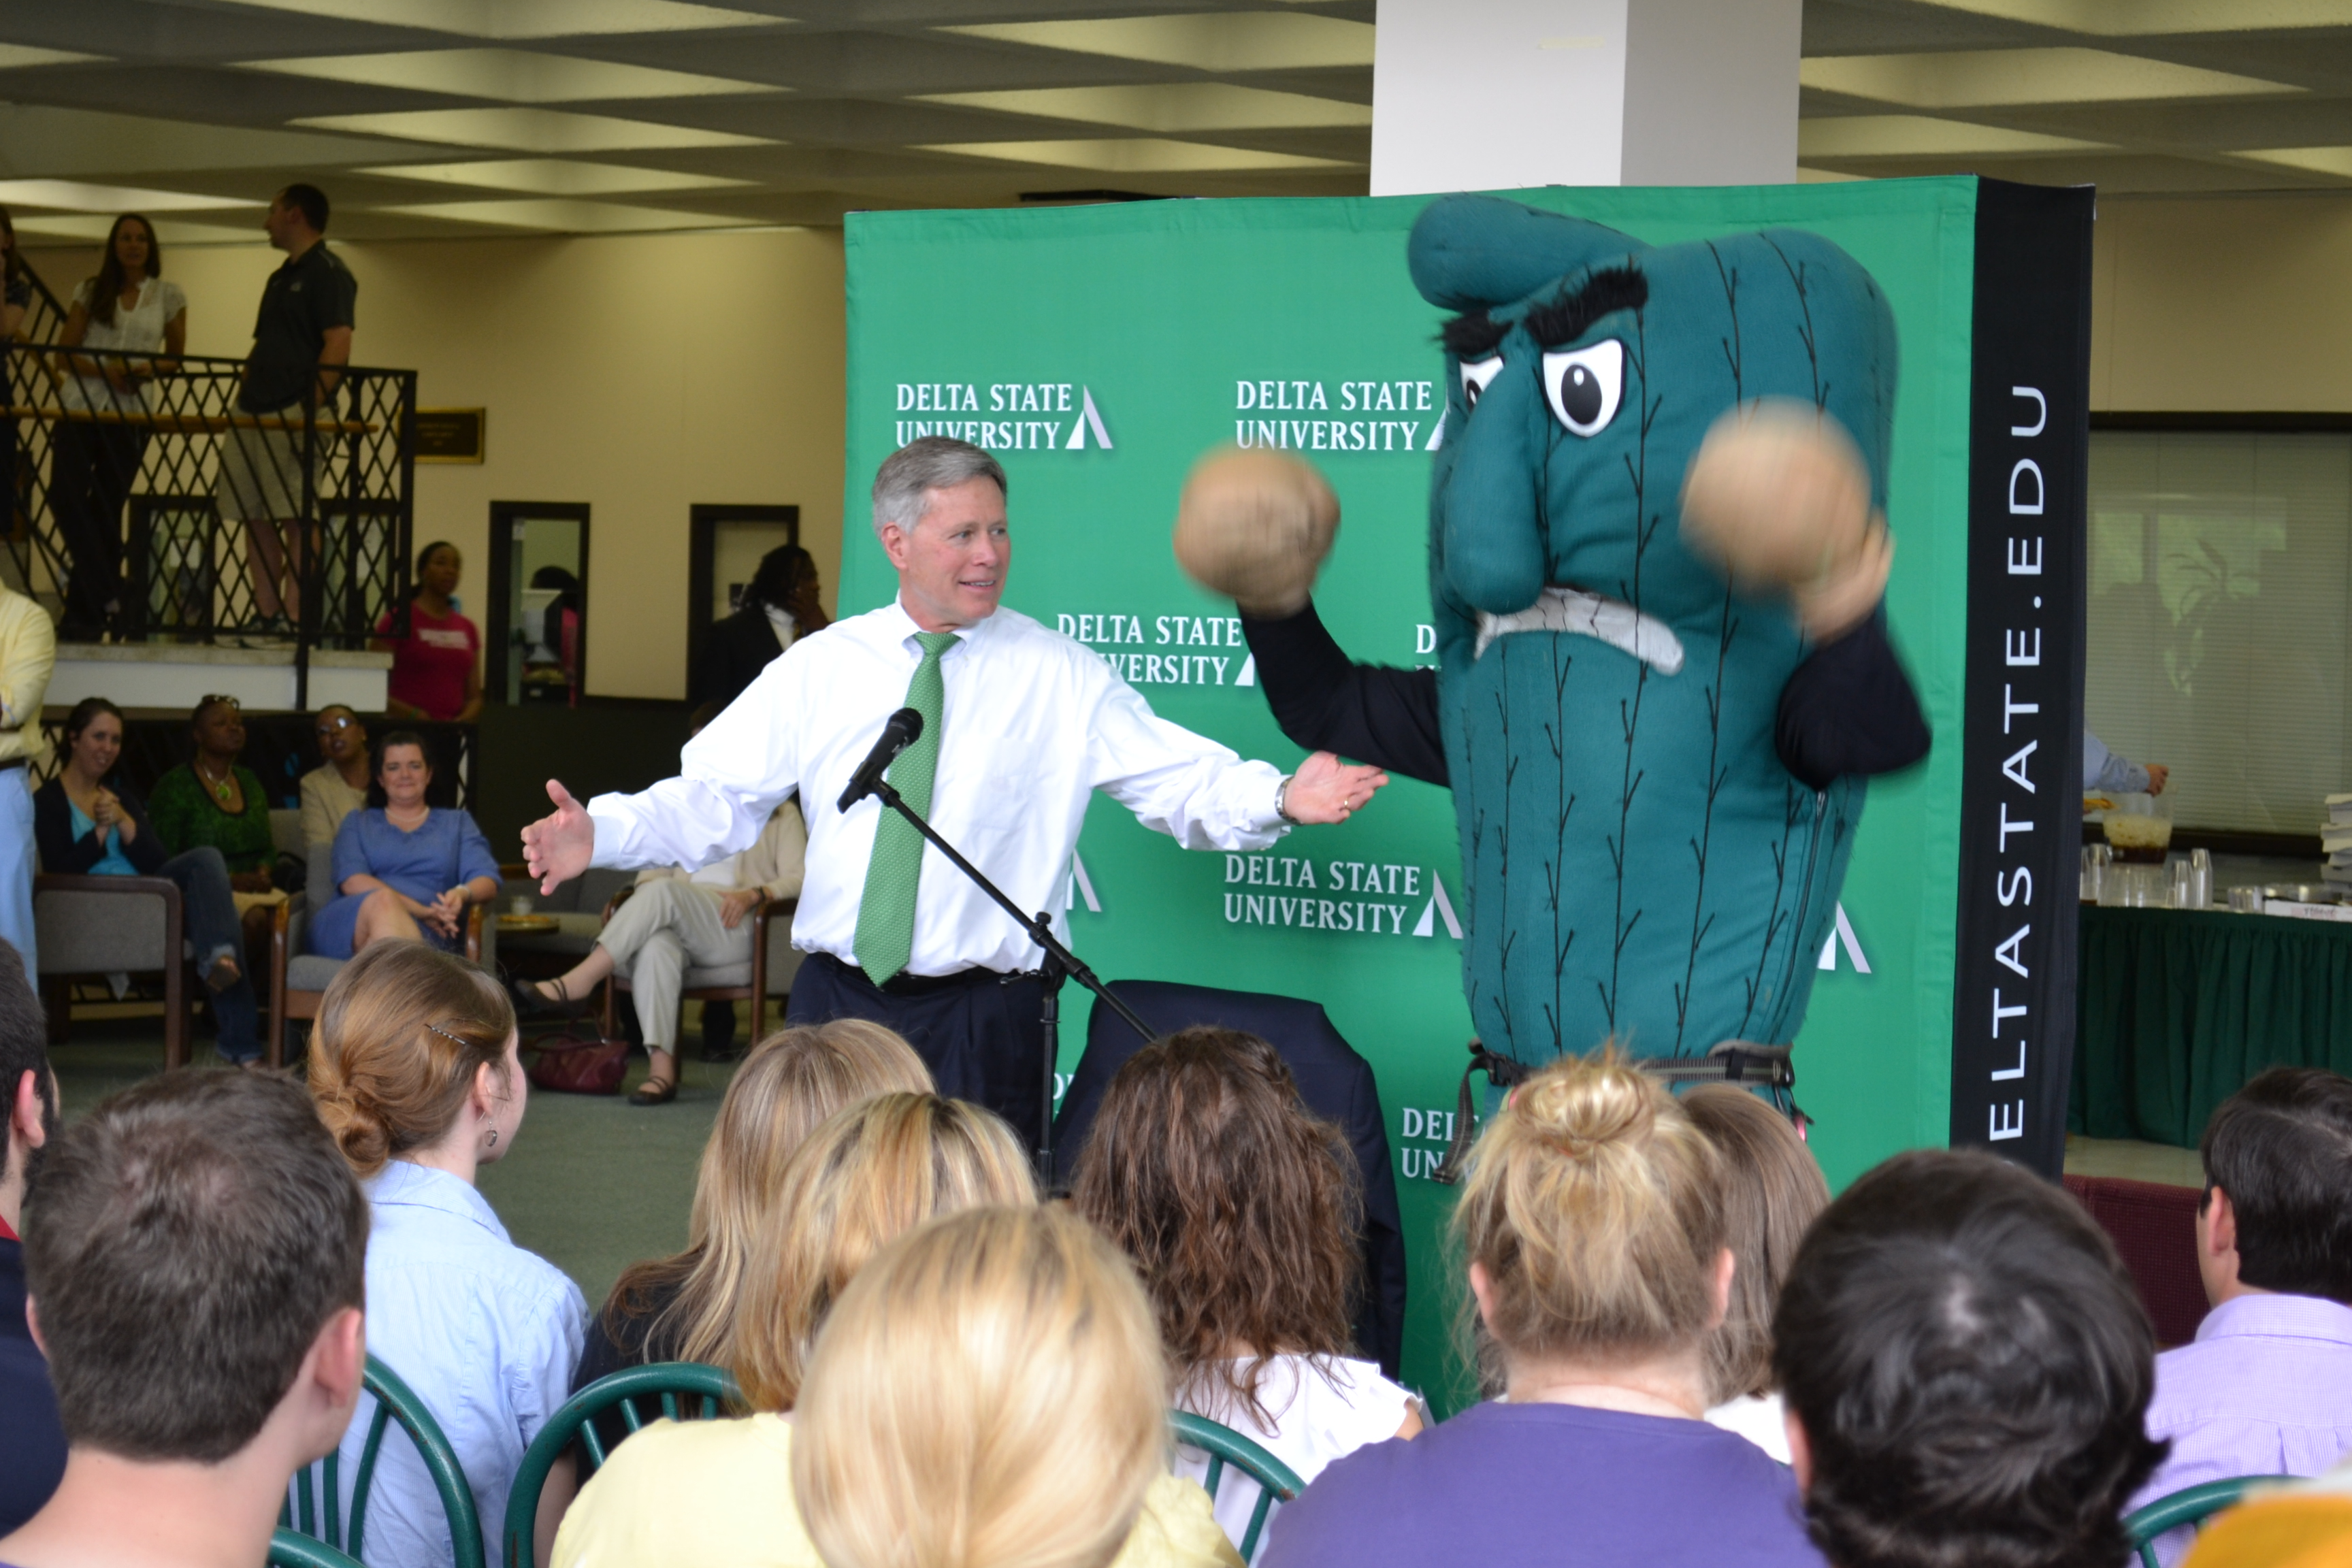 11 delta state fighting okra (division ii) - creepiest college football mascots